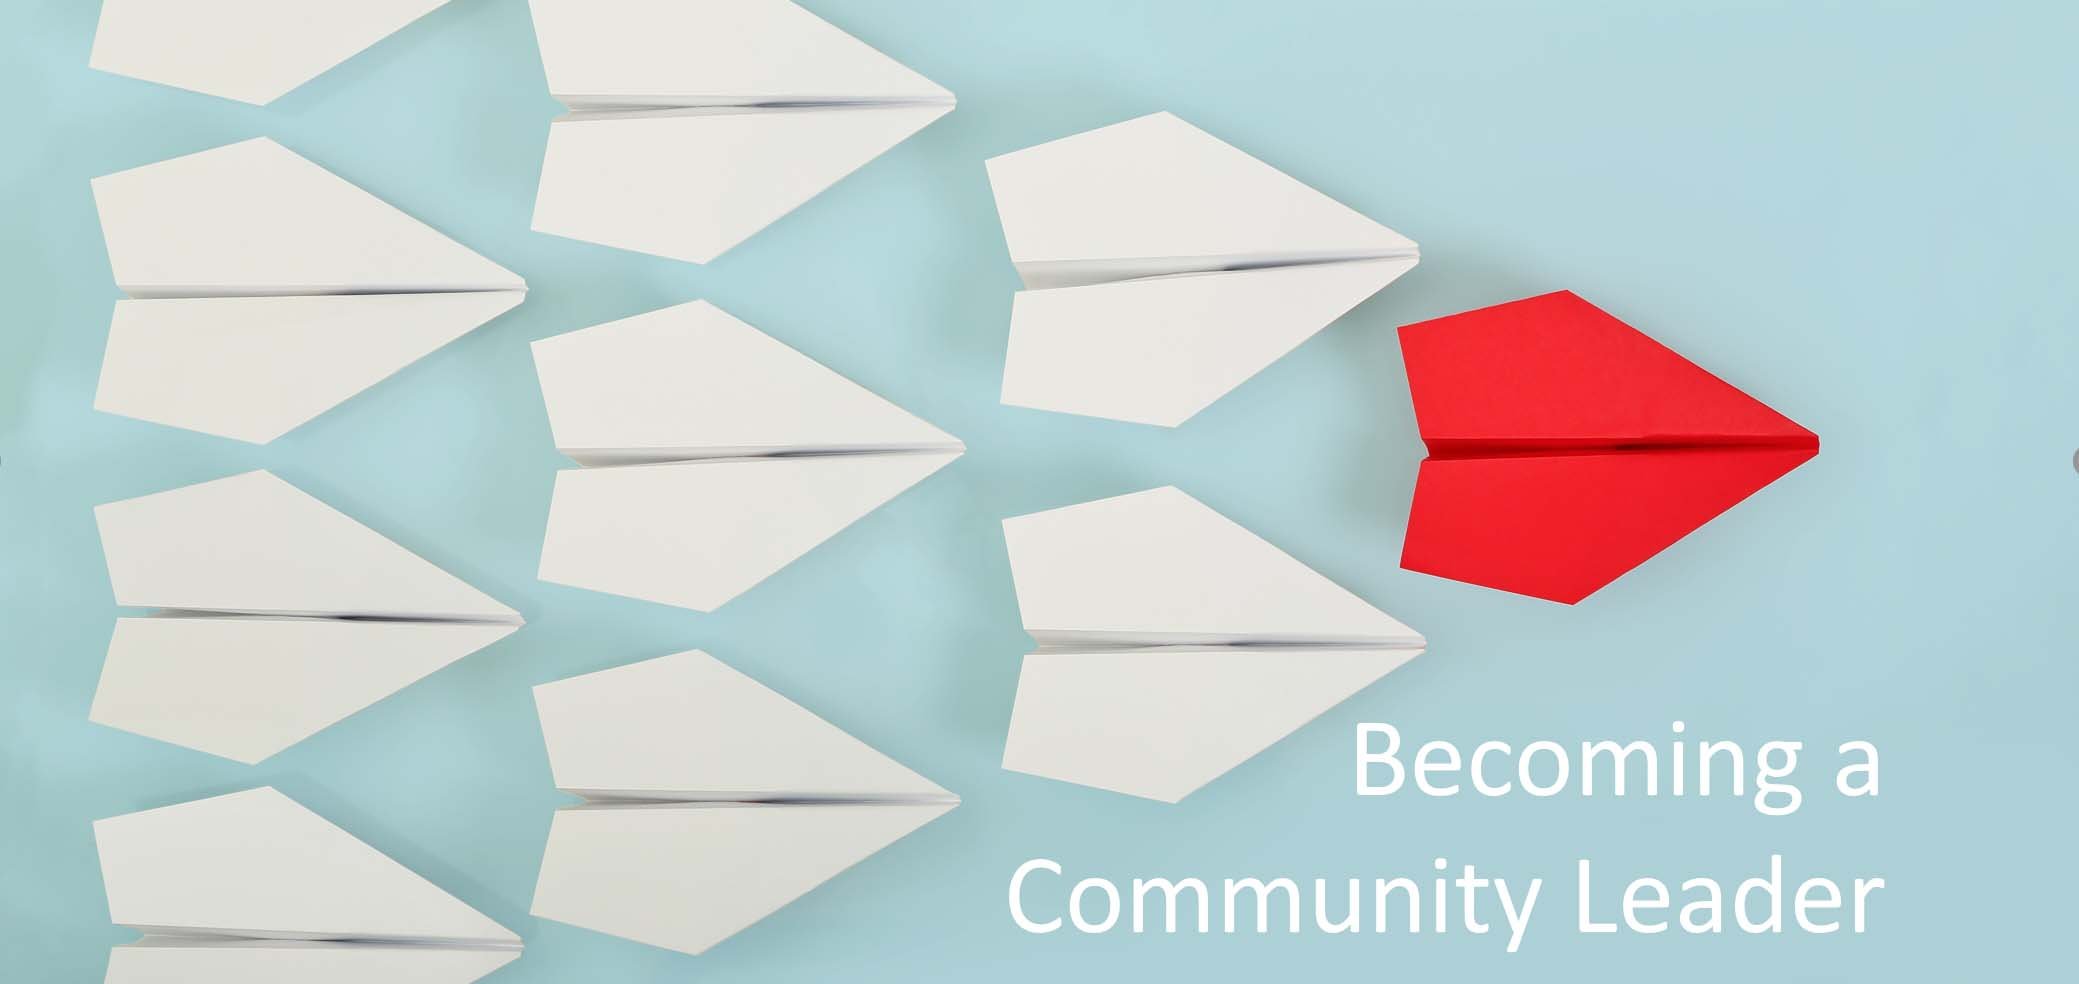 Becoming a Community Leader